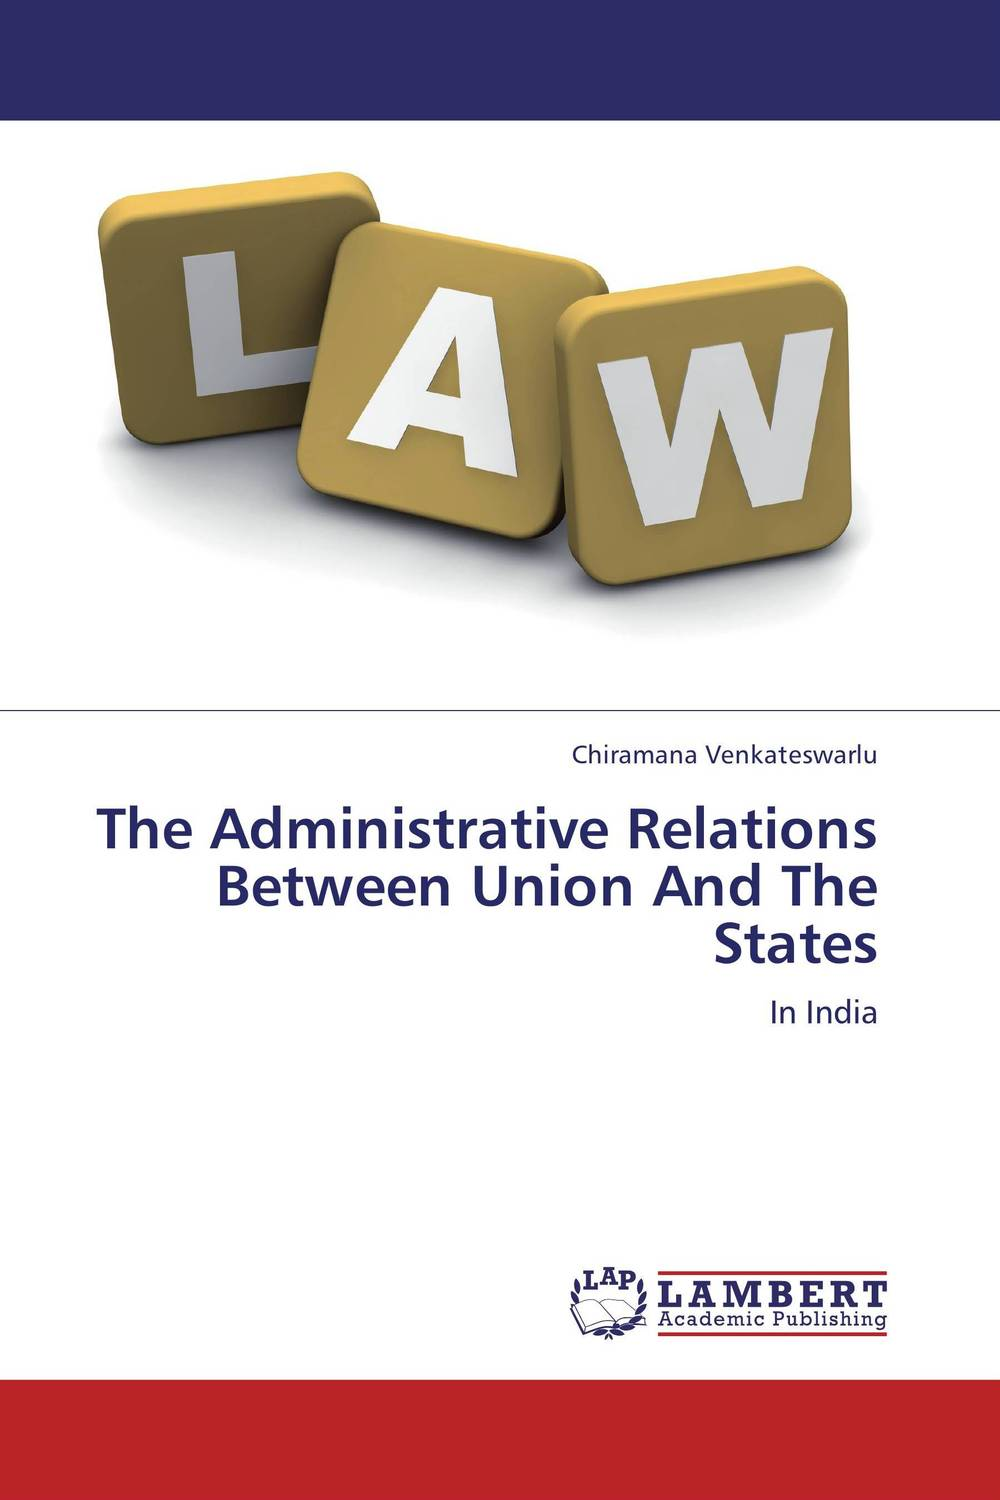 The Administrative Relations Between Union And The States global powers in the 21st century – strategy and relations